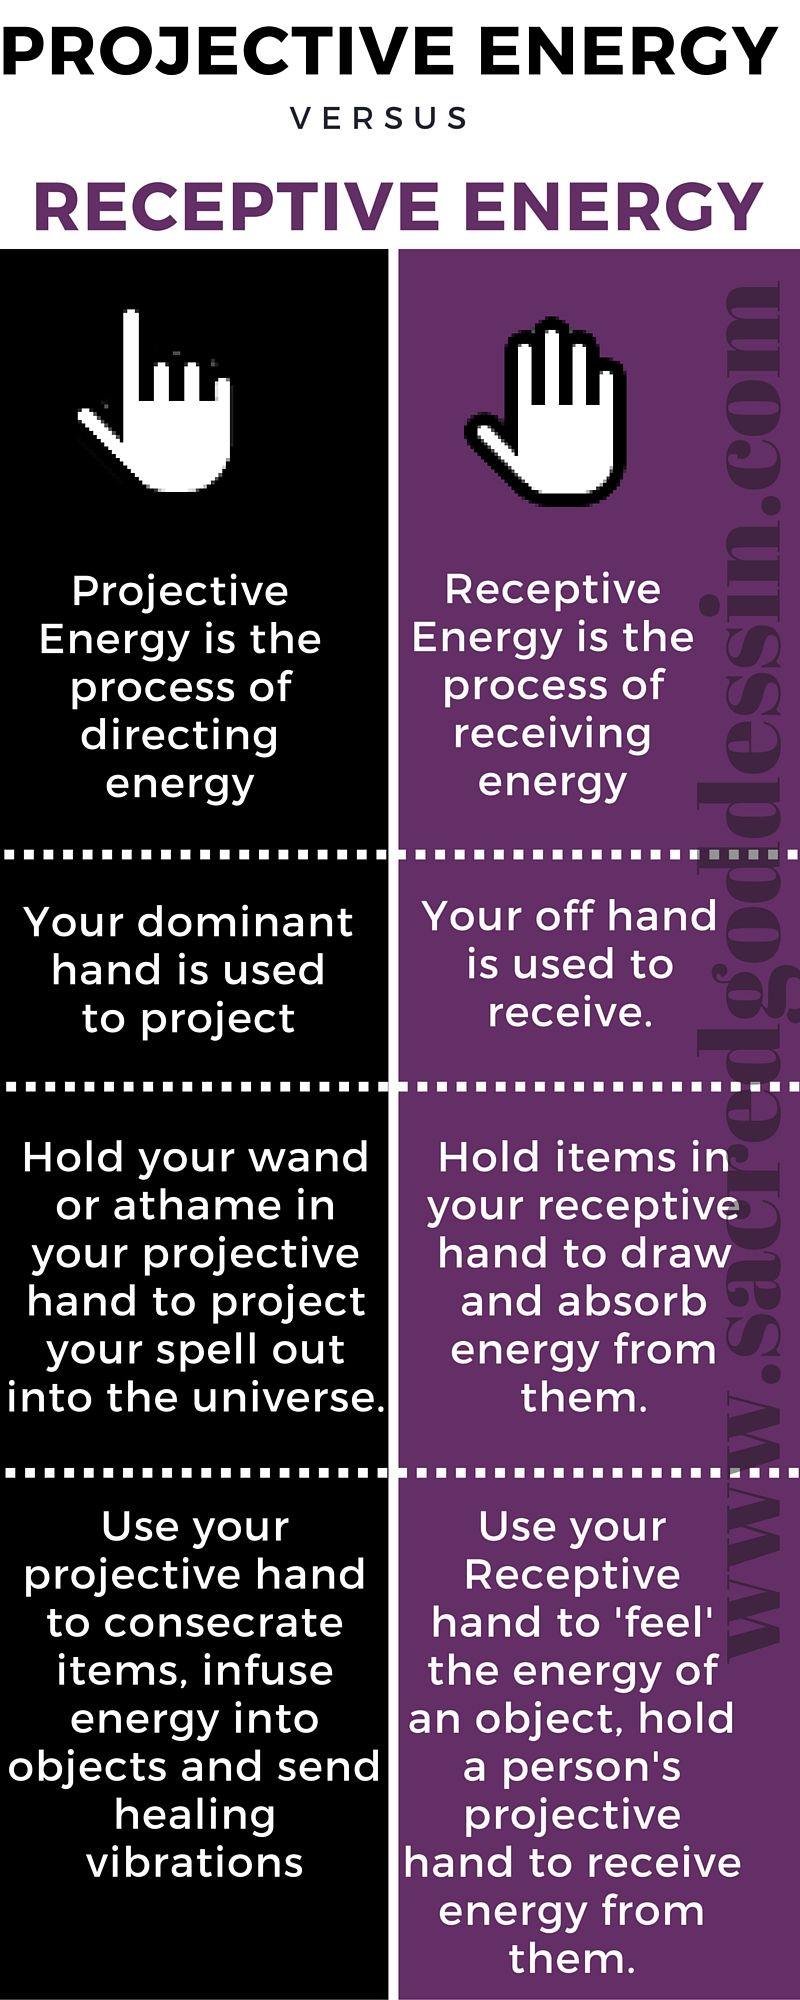 wicca for beginners projective energy vs receptive energy for